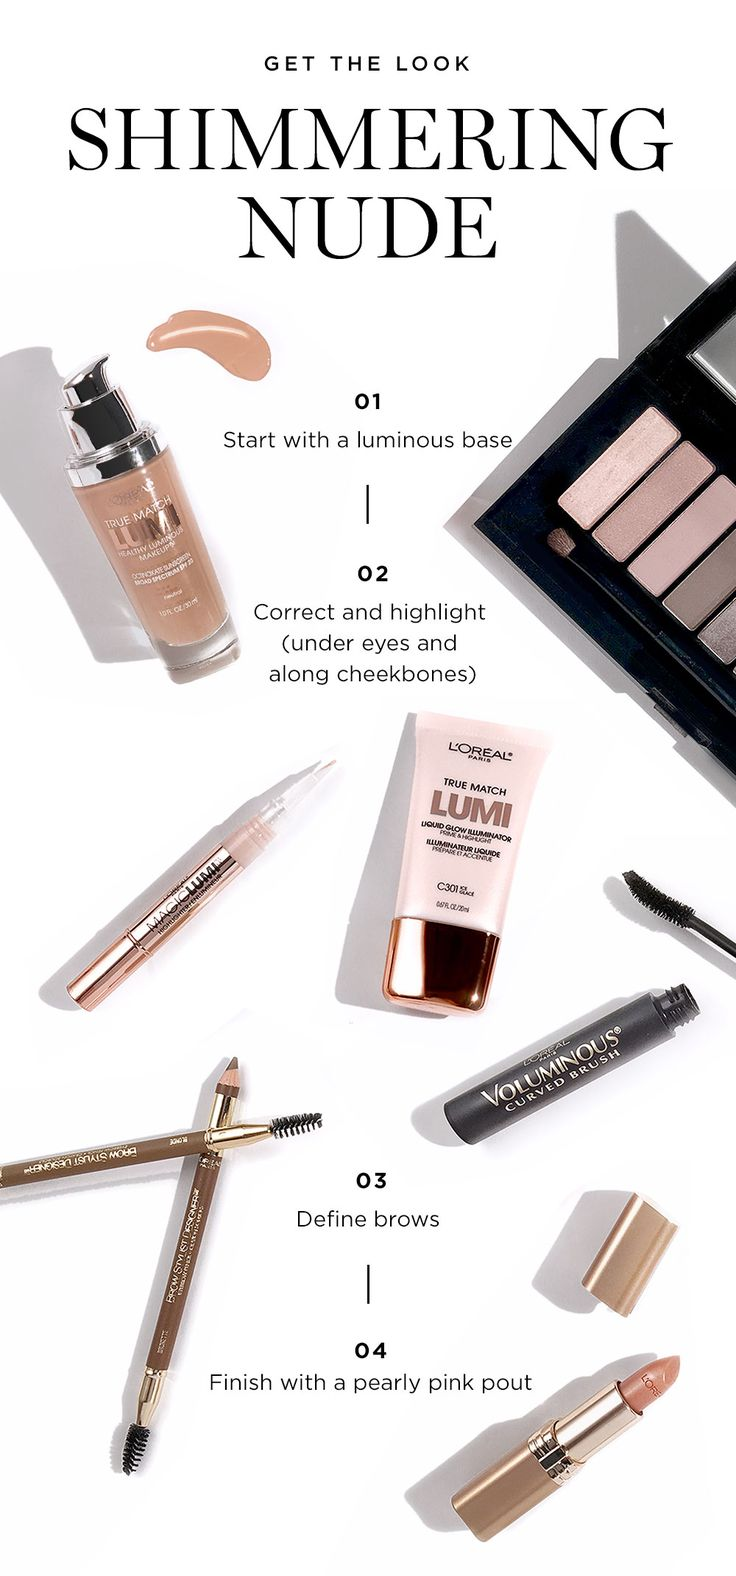 Fall Beauty How To: The beauty products you need to get the perfect shimmering nude look for Fall. Featuring La Palette nude eyeshadow palette, True Match Lumi Highlighter and Brow Stylist eyebrow shaping pencil.